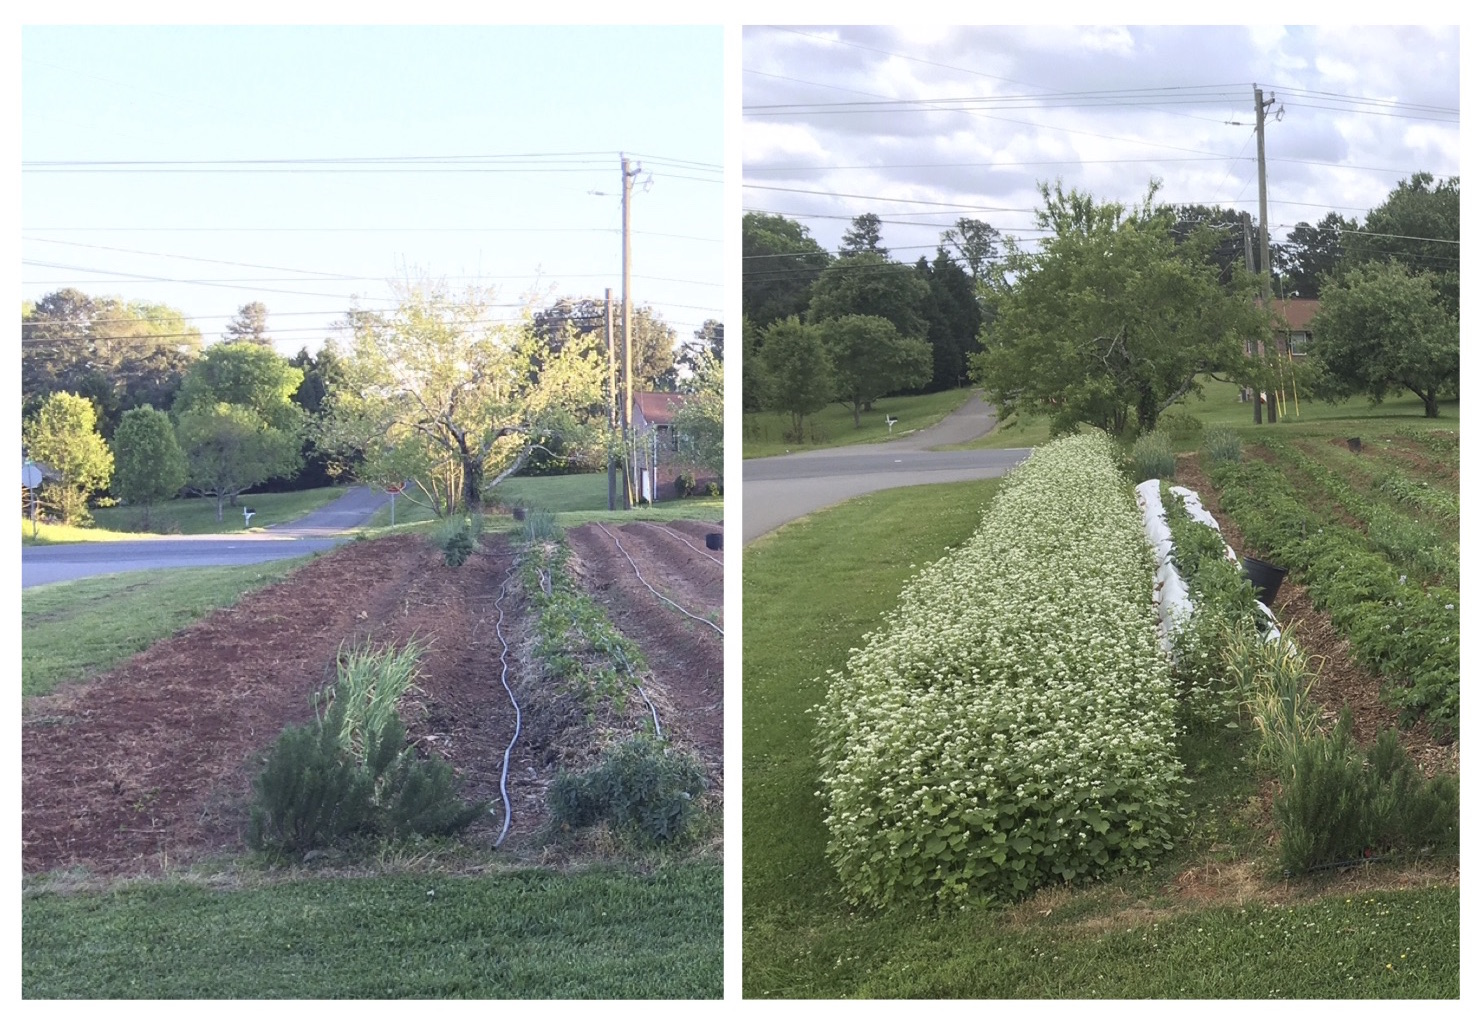 Buckwheat is a summer cover crop that also provides beautiful flowers for pollinators. Photo on left was taken on April 17 and the photo on the right was taken on May 18.